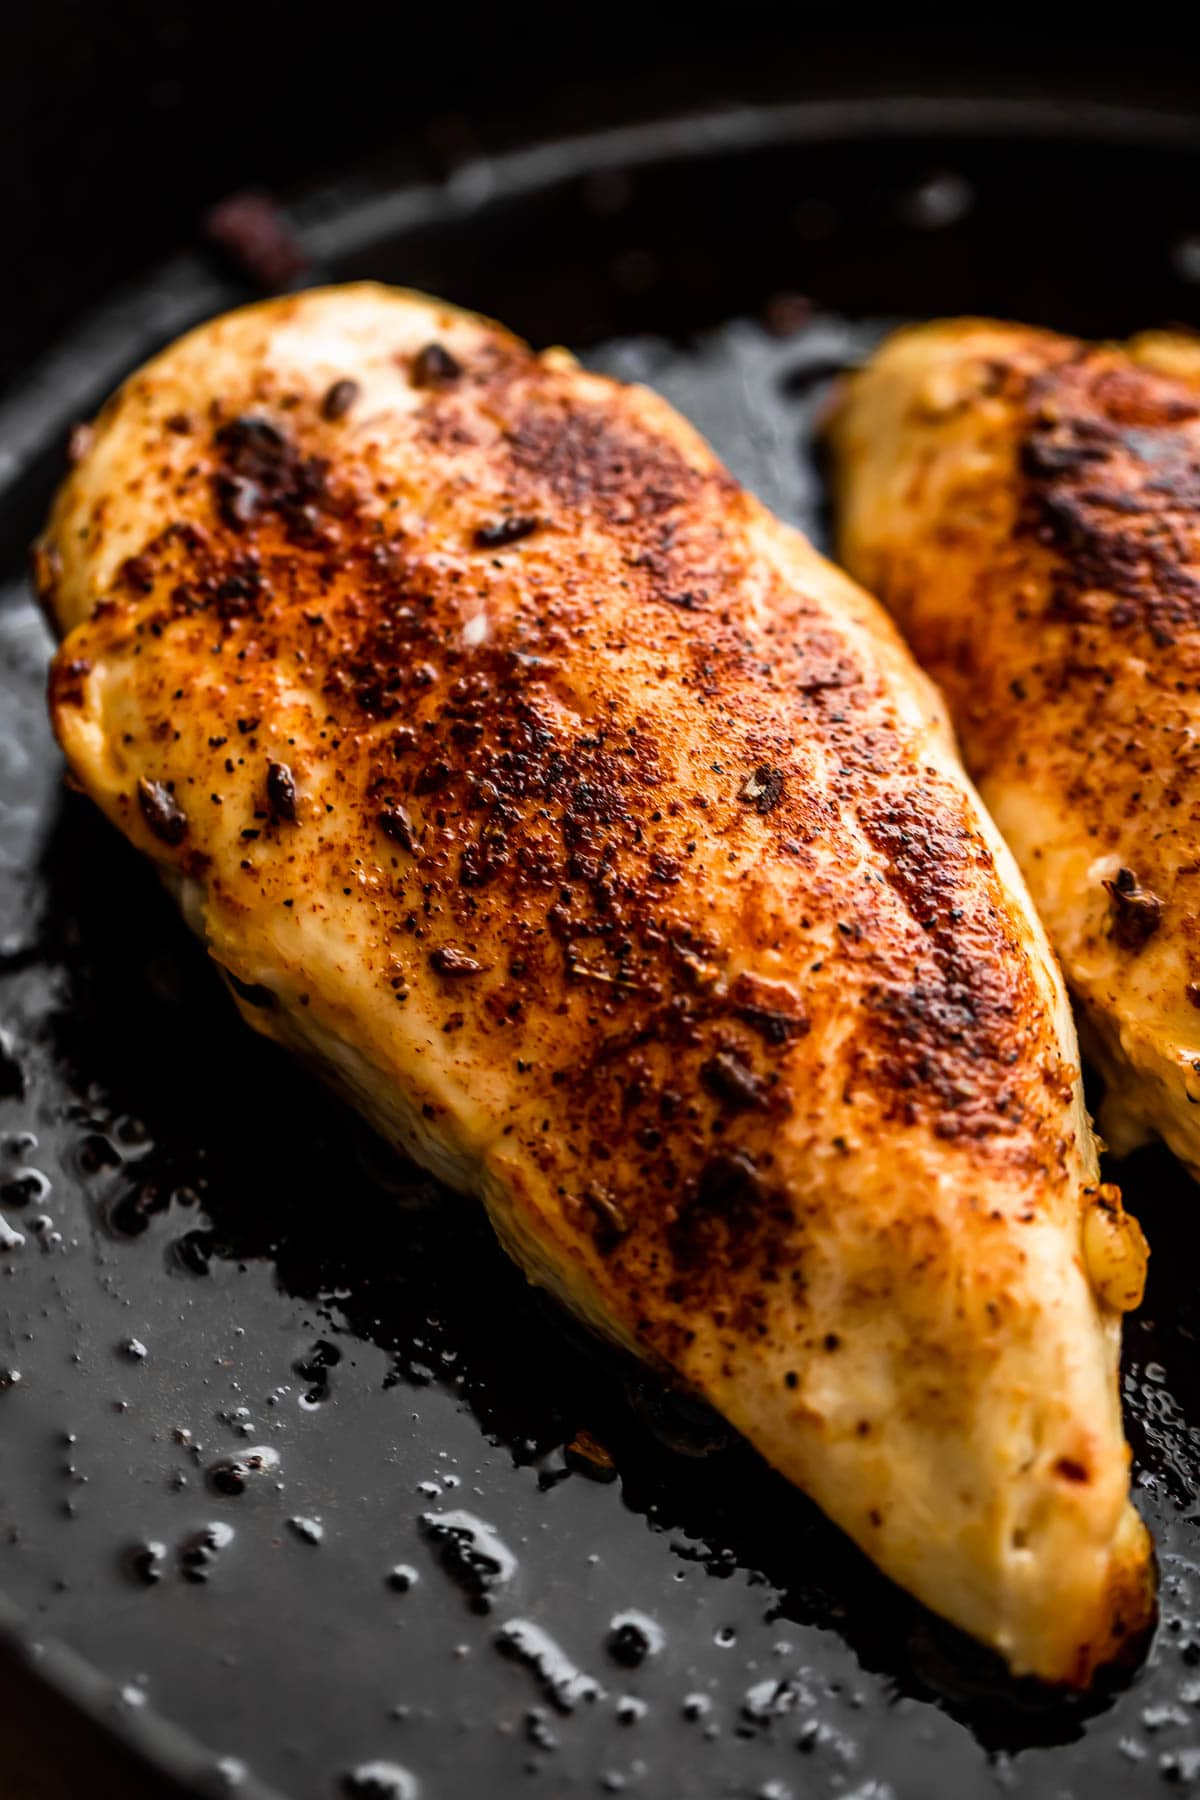 cooking chicken breasts in a cast iron skillet.